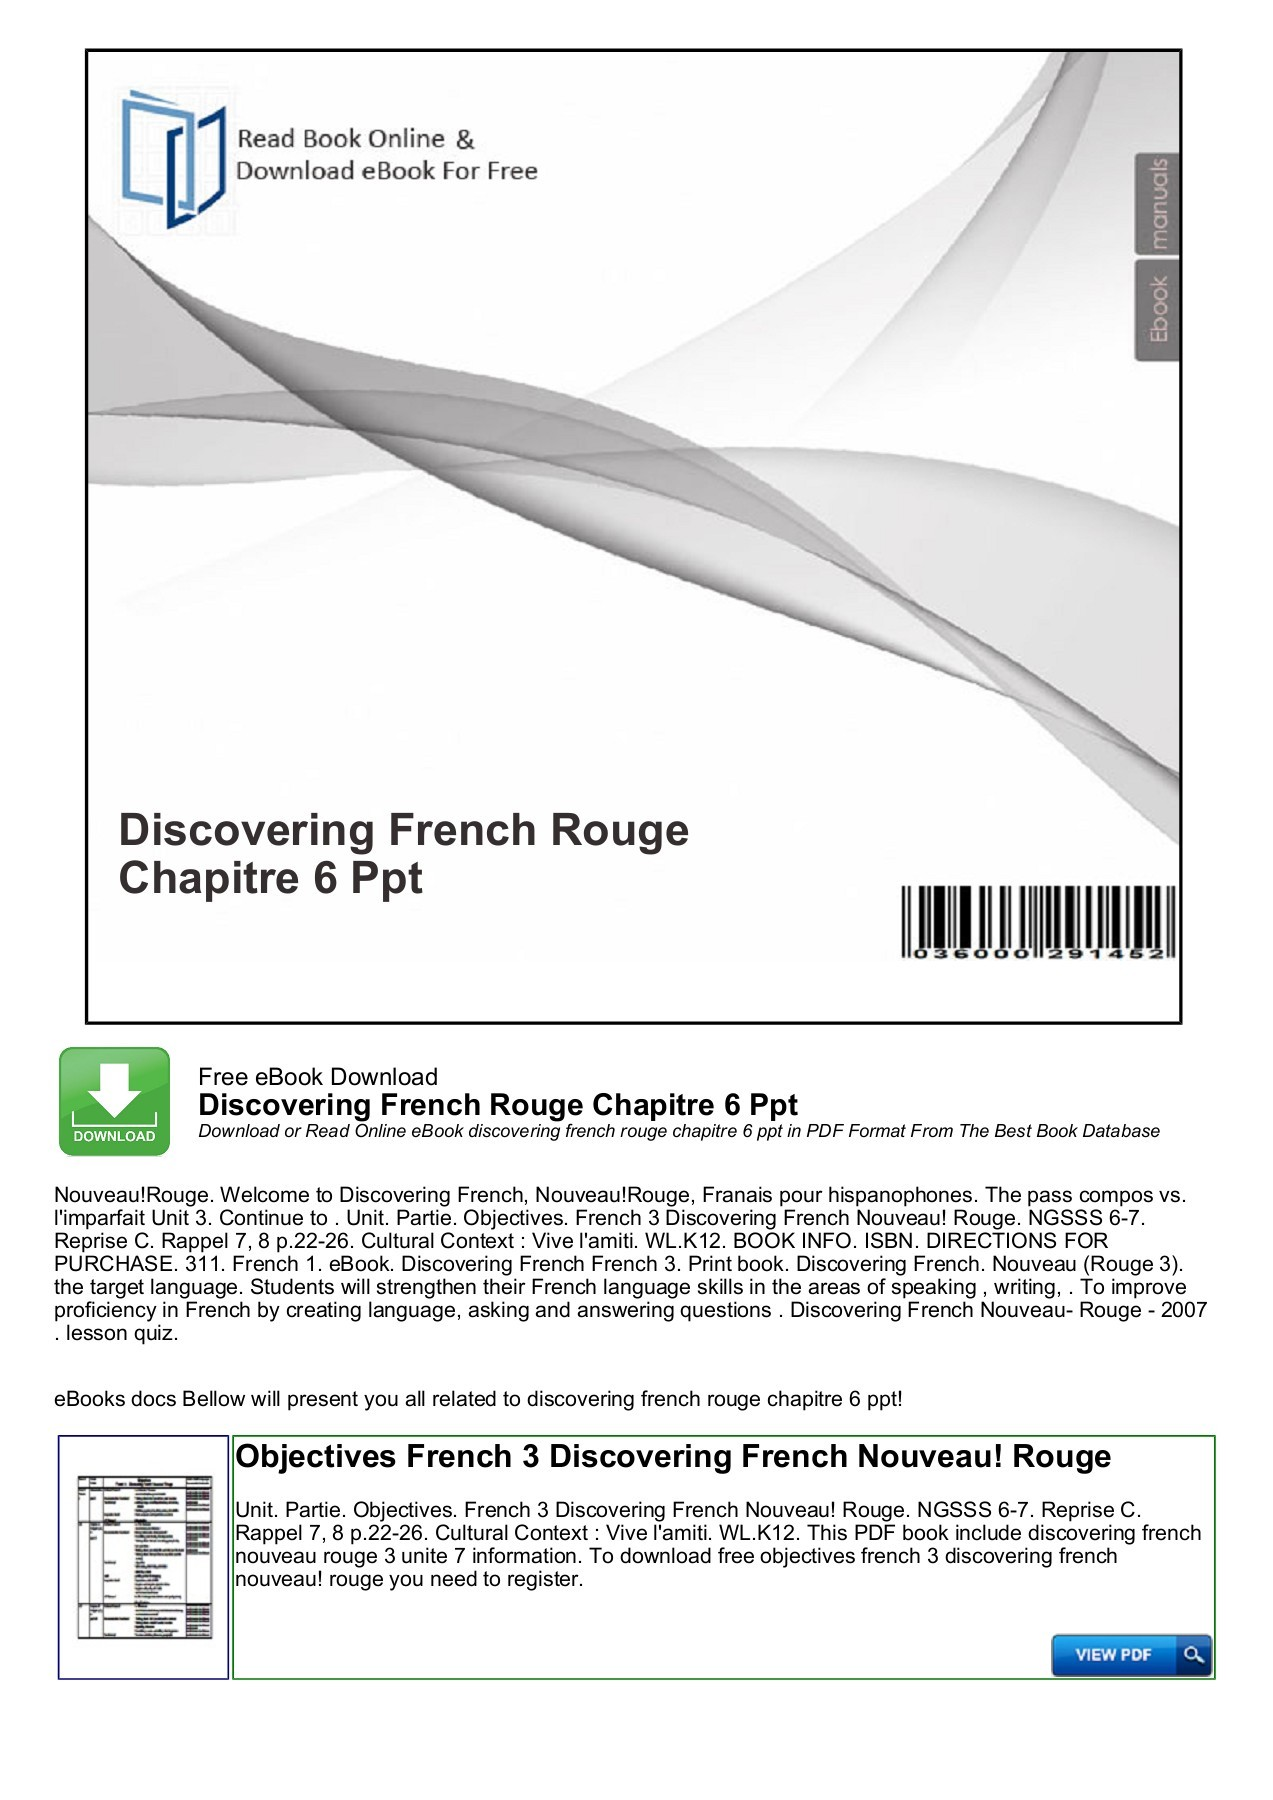 Bestseller Holt French 1 Workbook Answers Chapter 6